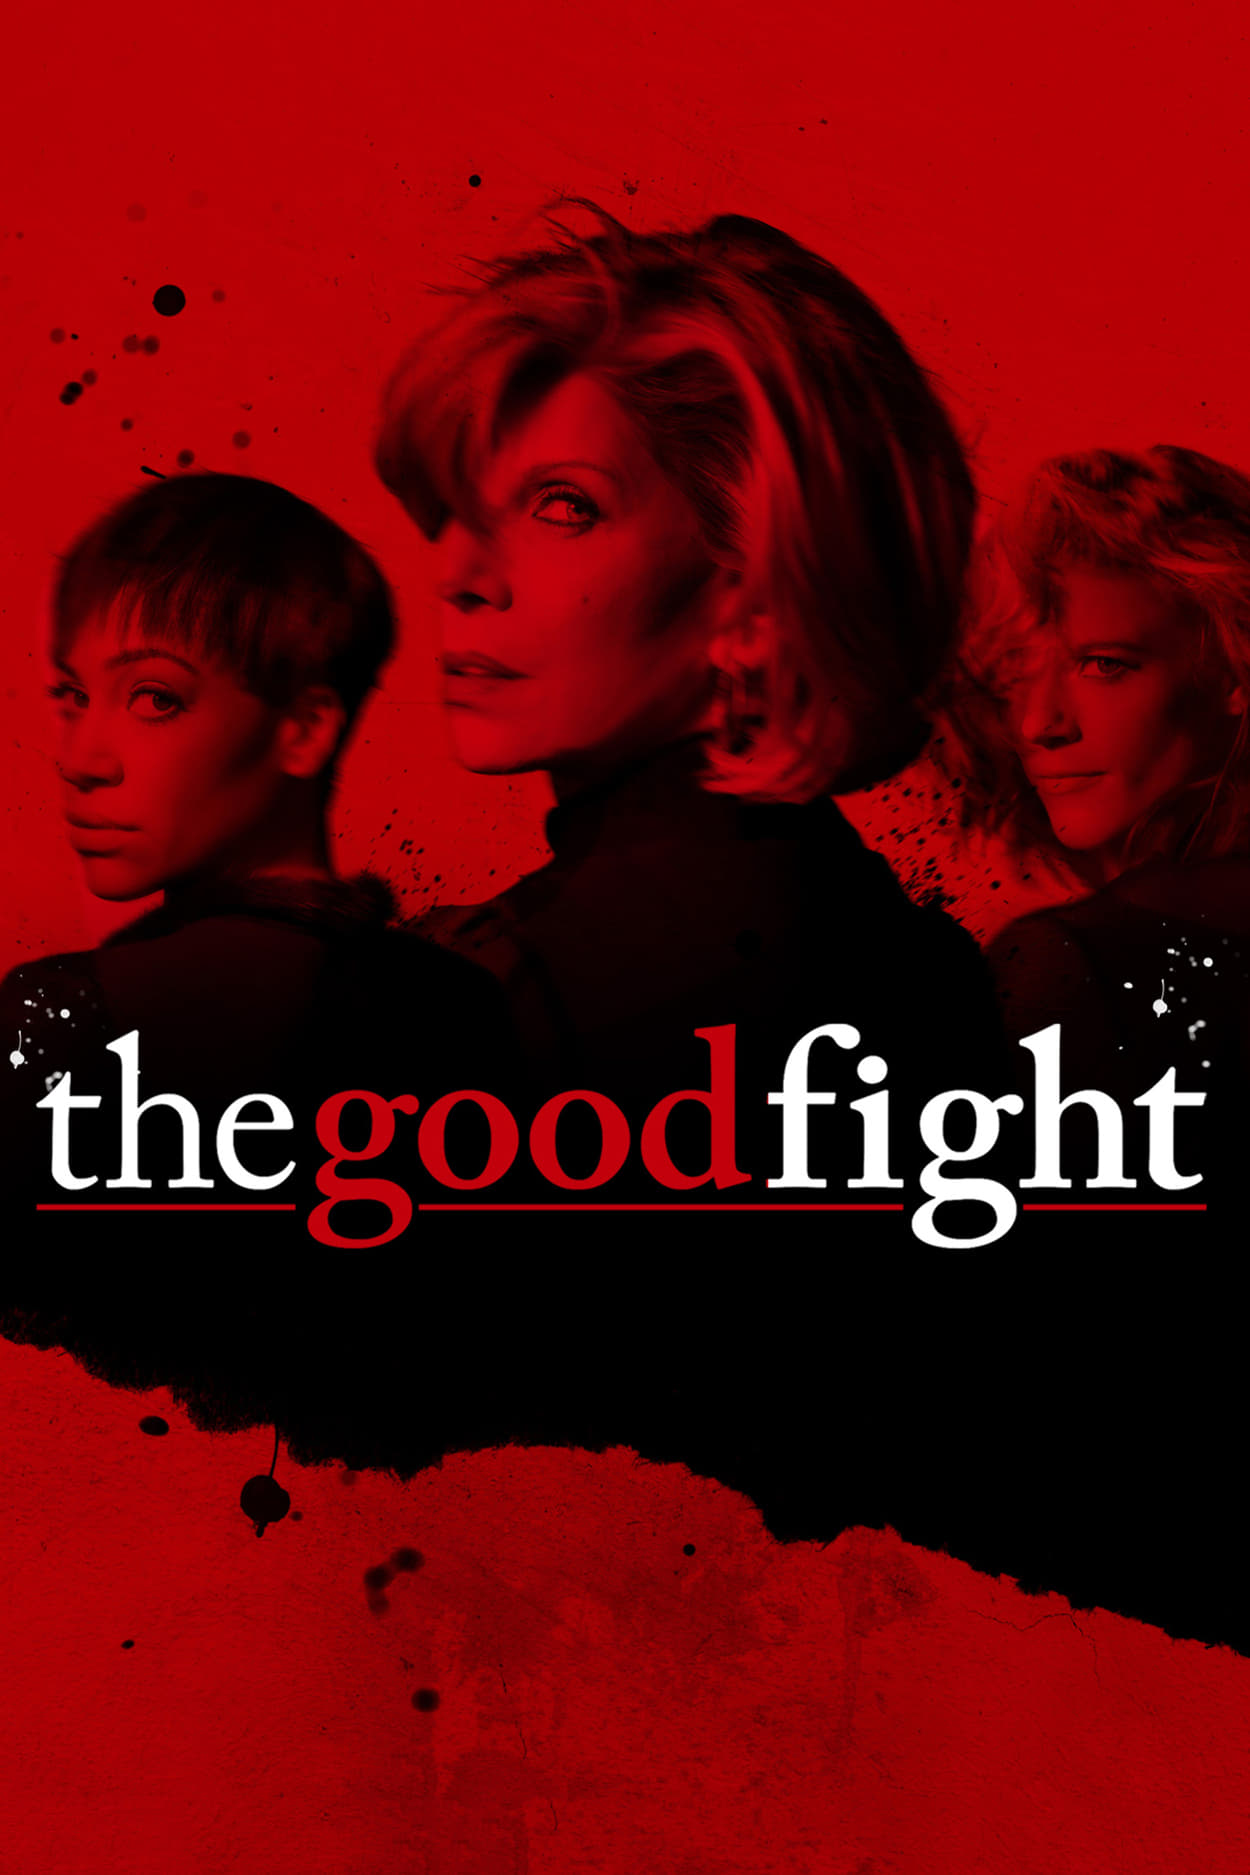 image for The Good Fight